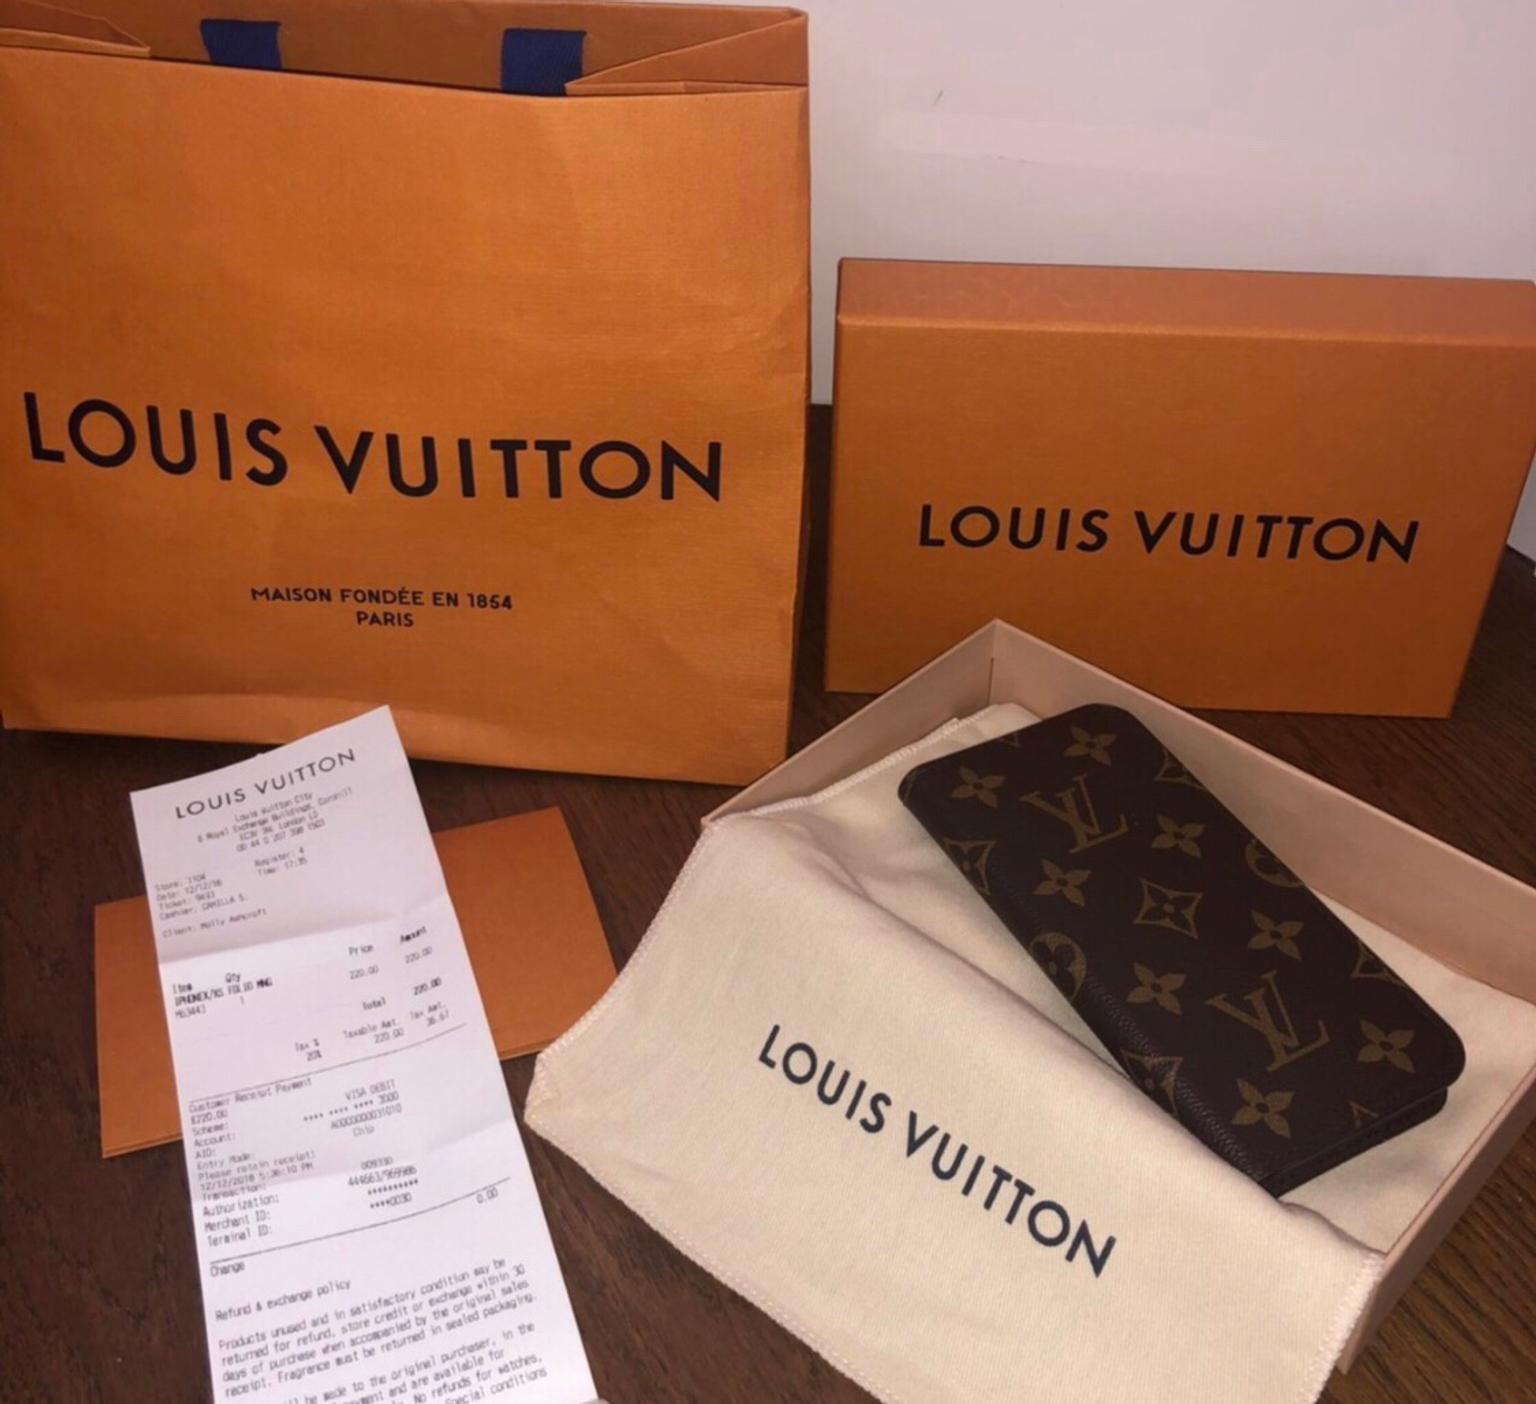 Louis Vuitton IPhone X/Xs Folio Case In KT9 London For £150 00 For